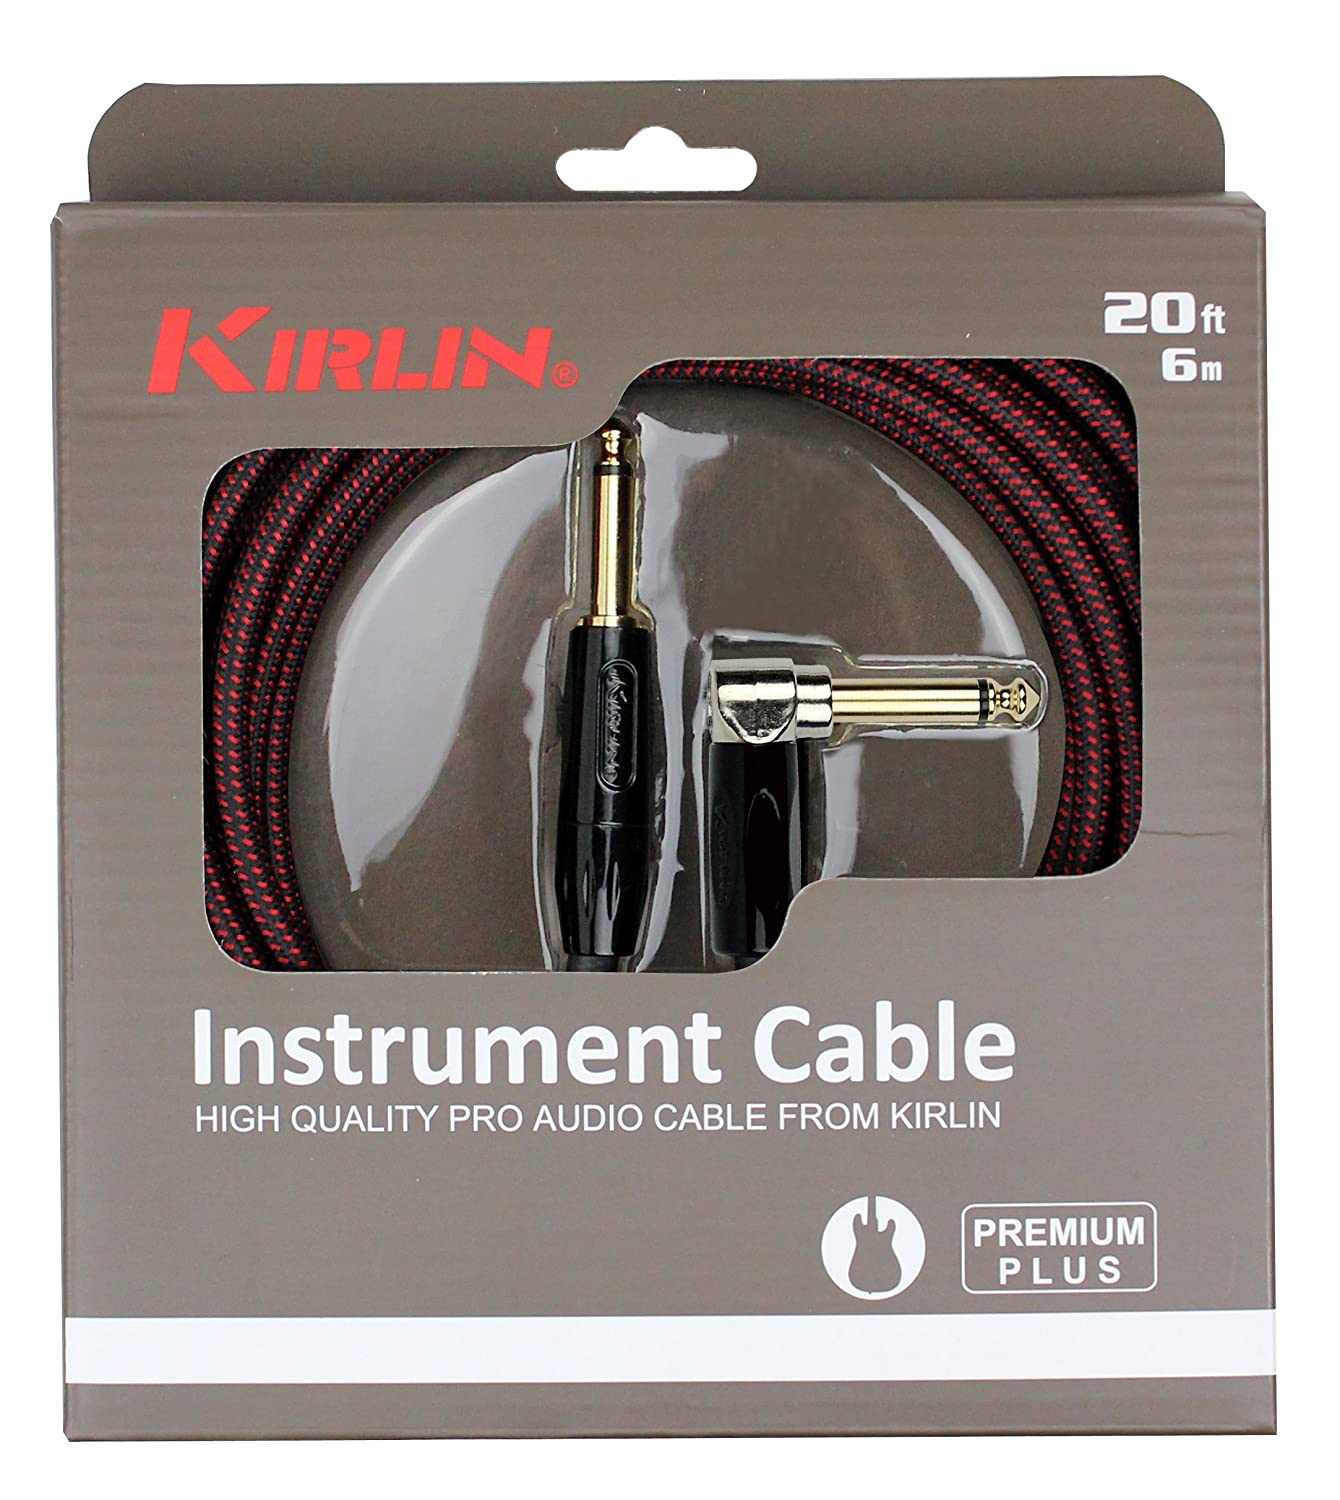 Black//Red Woven Jacket KIRLIN Cable IWB-202BFGL-10//BR 10-Feet Premium Plus Instrument Cable